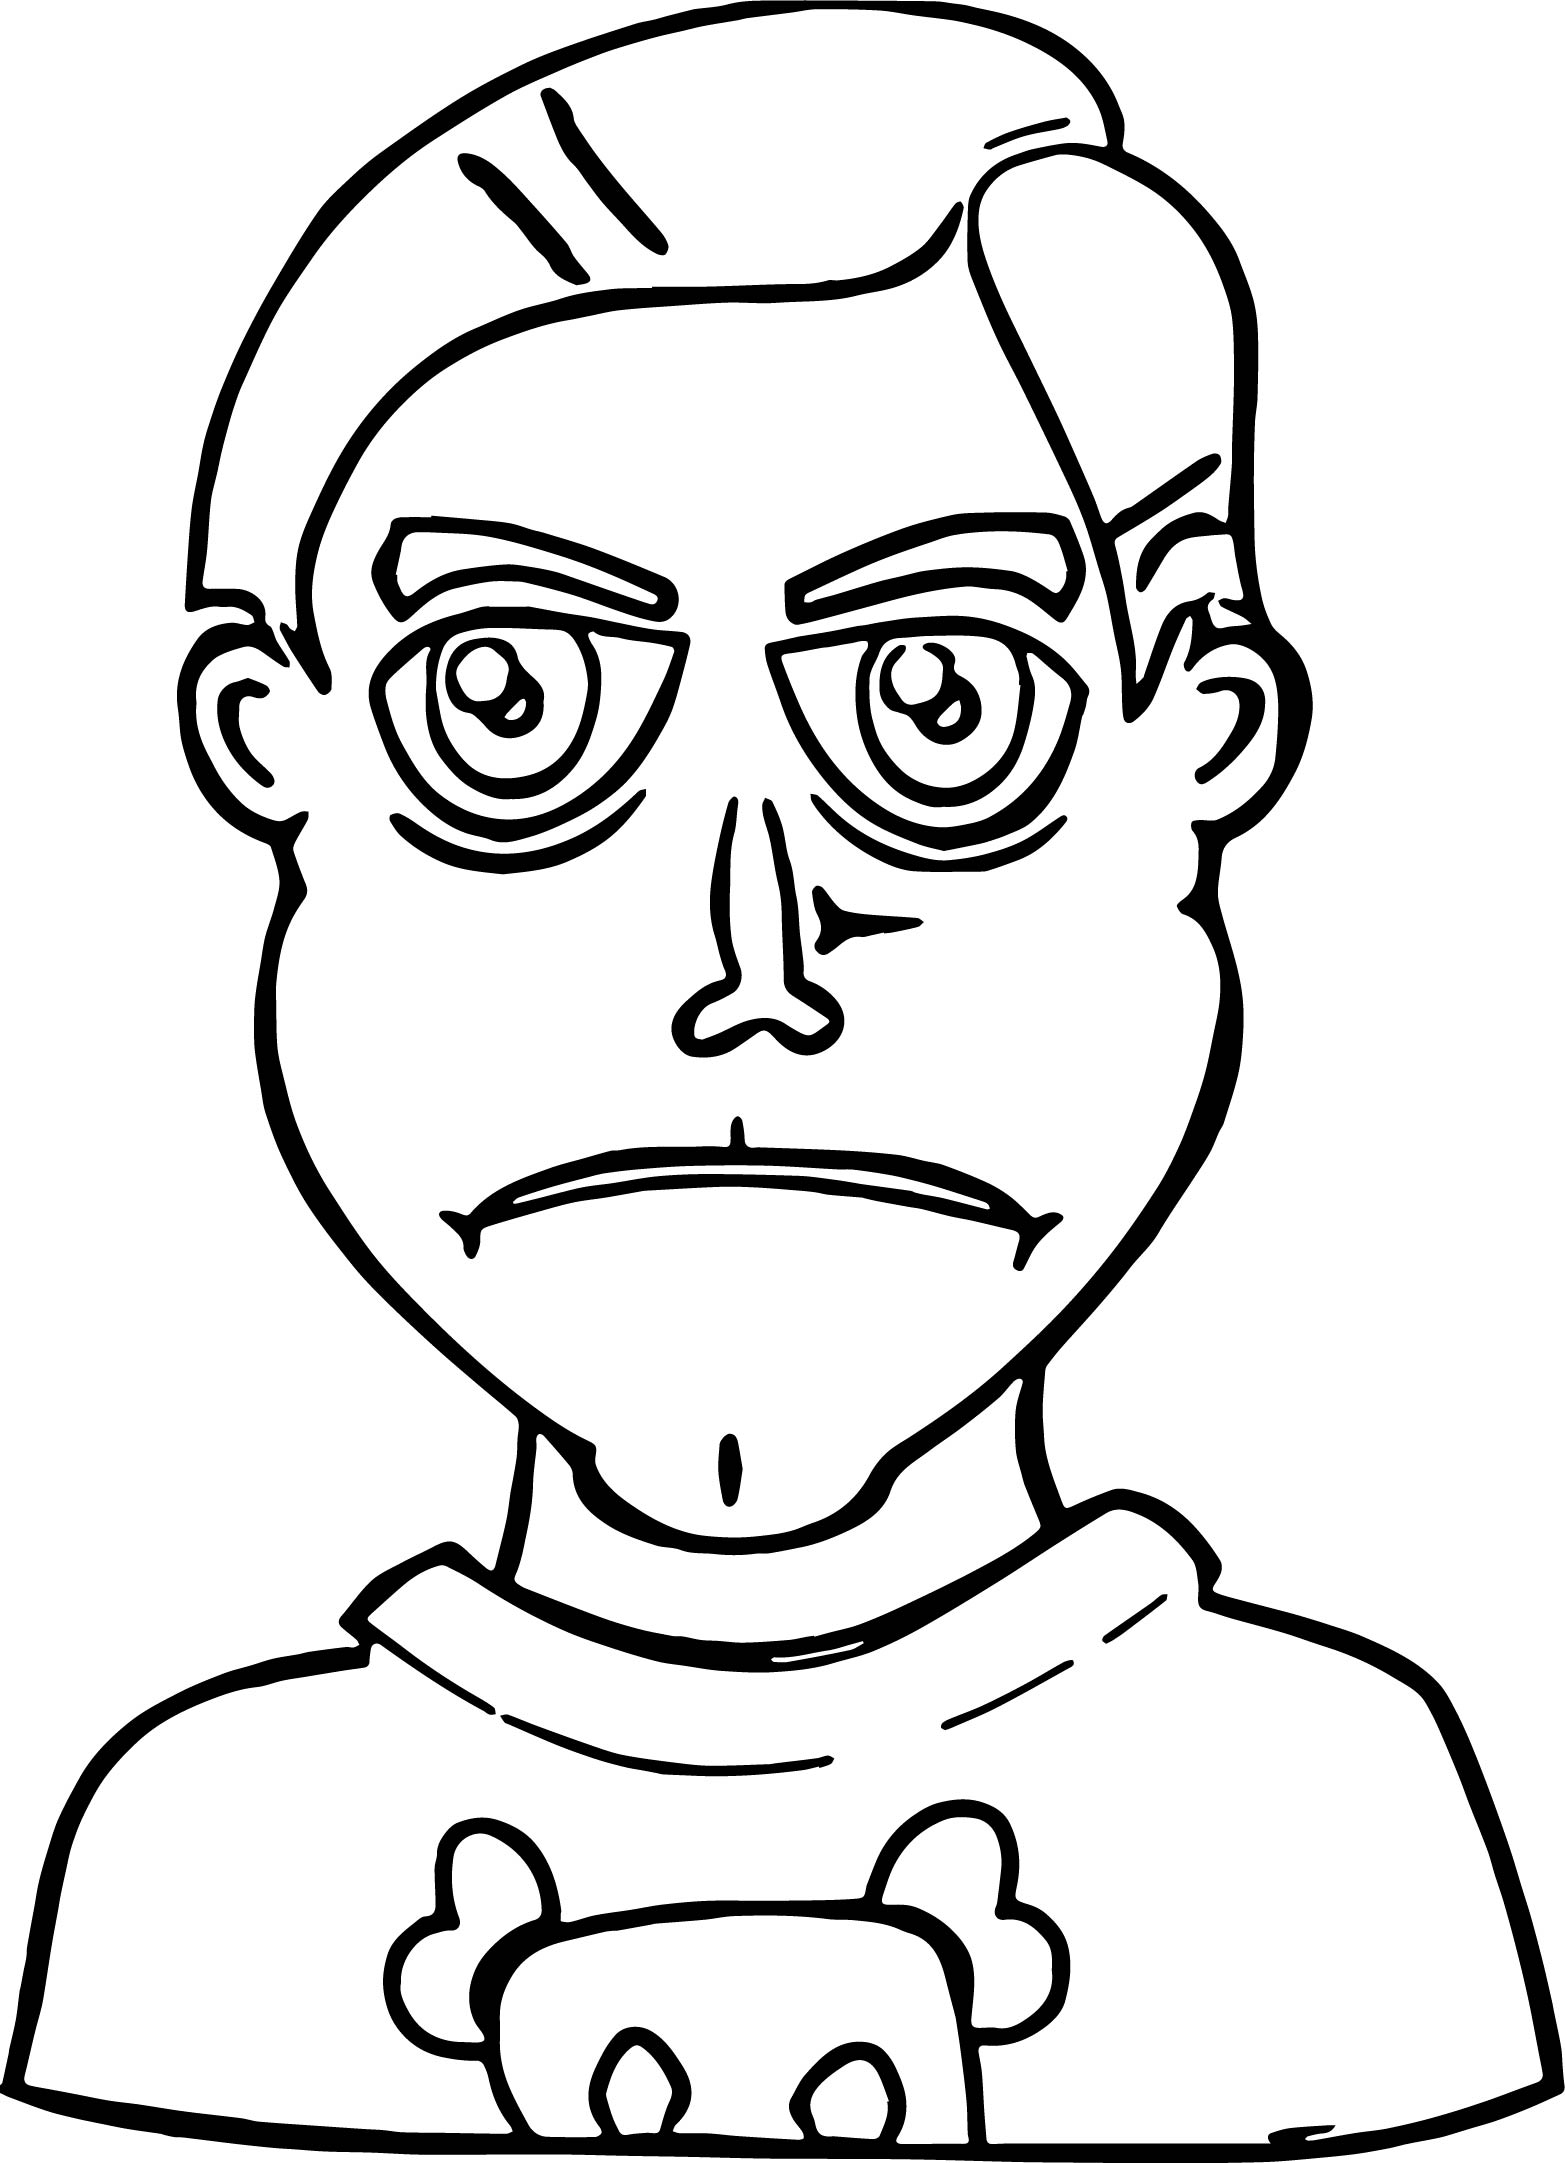 Face People Faces Kid Clip Art Coloring Page